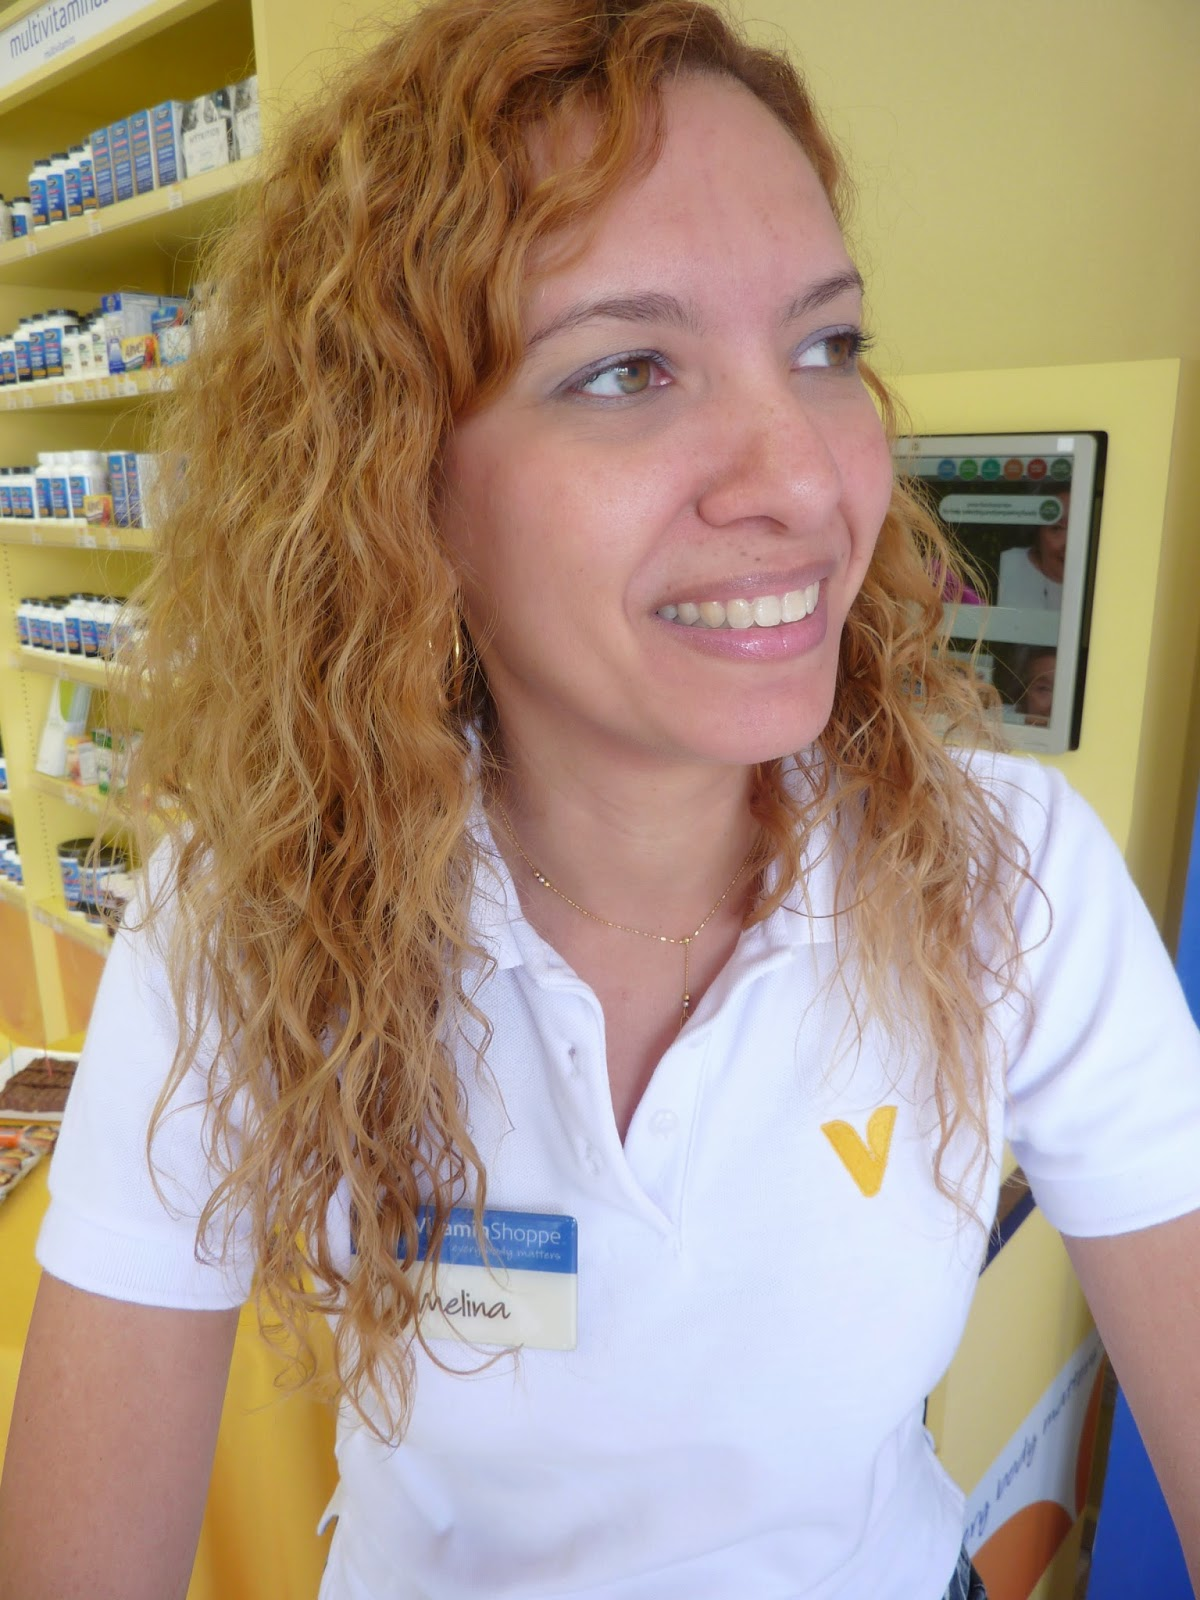 The Vitamin Shoppe Panama